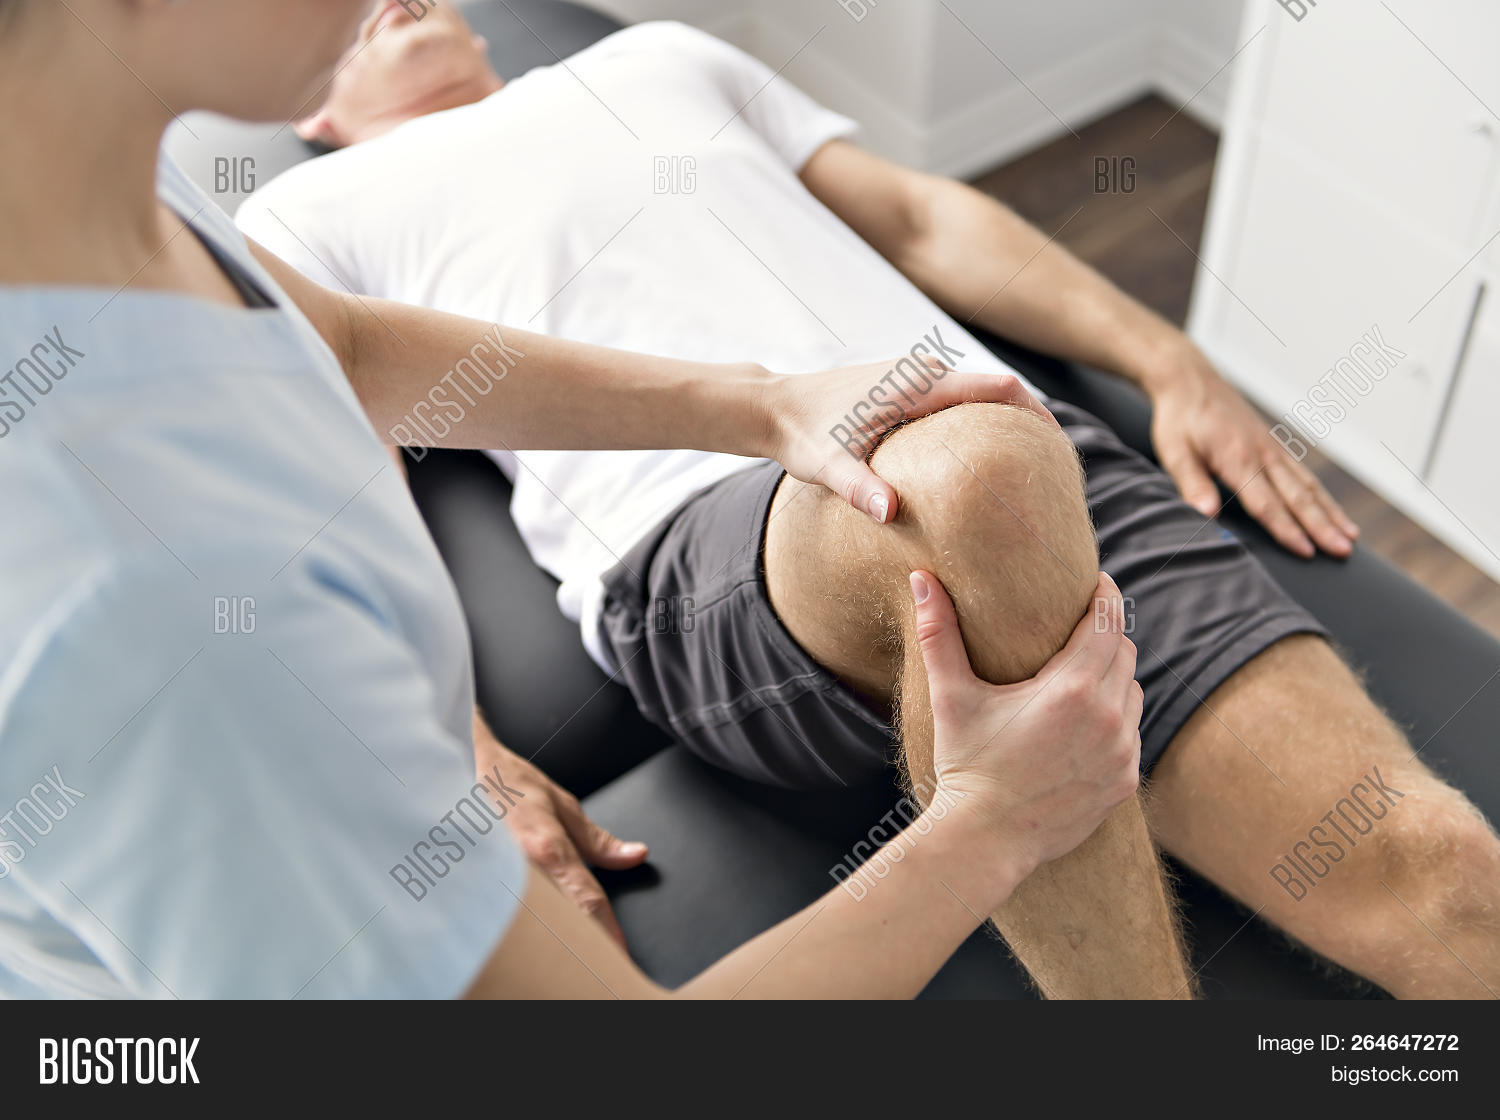 assistance,athletic,body,care,caucasian,chiropractor,clinic,diagnosis,doctor,exercise,female,full,hardening,heal,health,healthcare,injury,knee,leg,male,man,medical,medicate,medicine,muscles,occupation,patient,people,physical,physio,physiotherapist,physiotherapy,practice,profession,rehab,rehabilitation,room,senior,sport,stretch,stretching,tension,therapist,therapy,treatment,woman,work